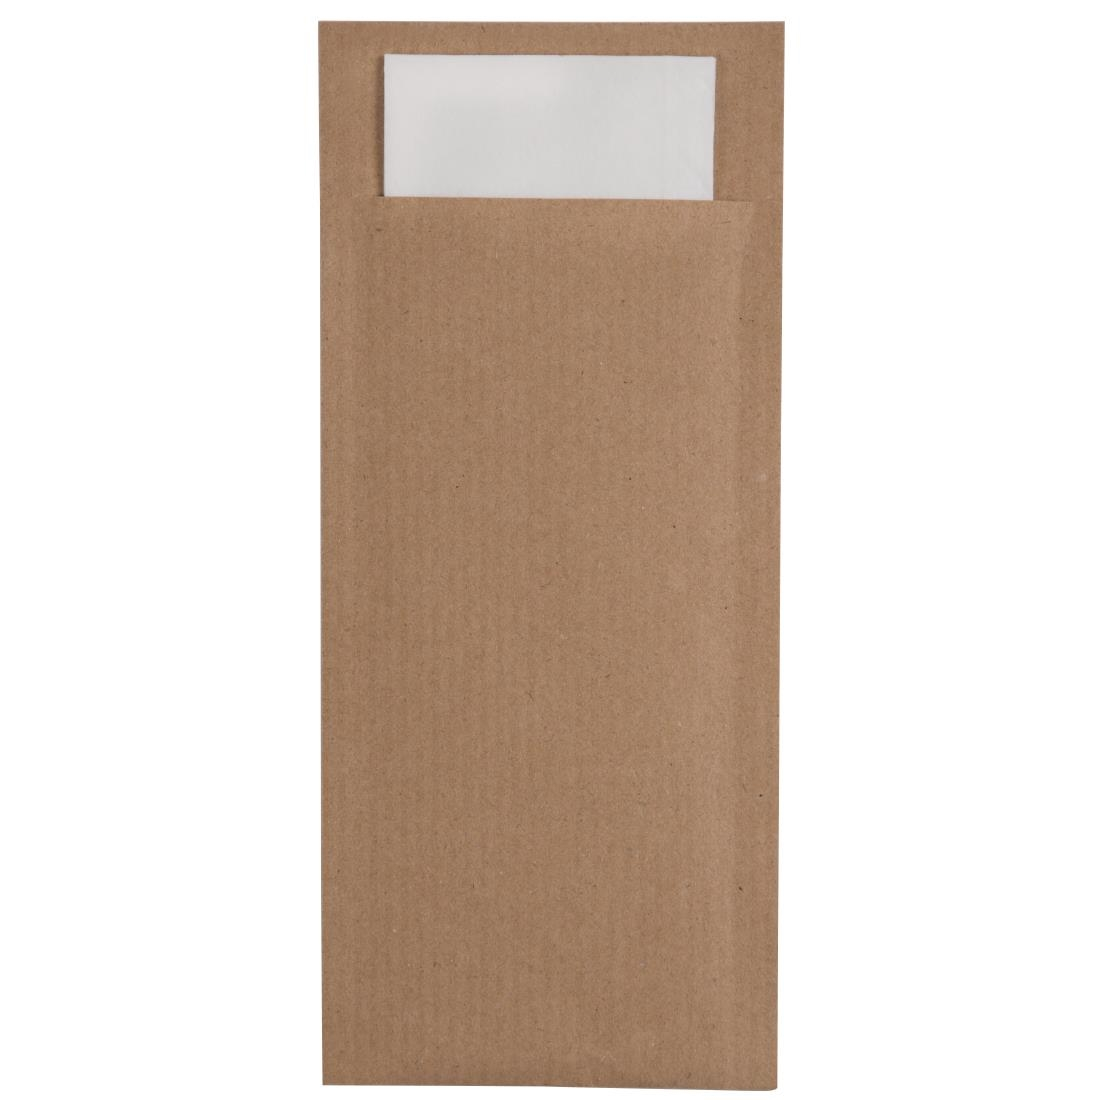 Image of Europochette Kraft Brown Cutlery Pouch with White Napkin (Pack of 600) Pack of 600